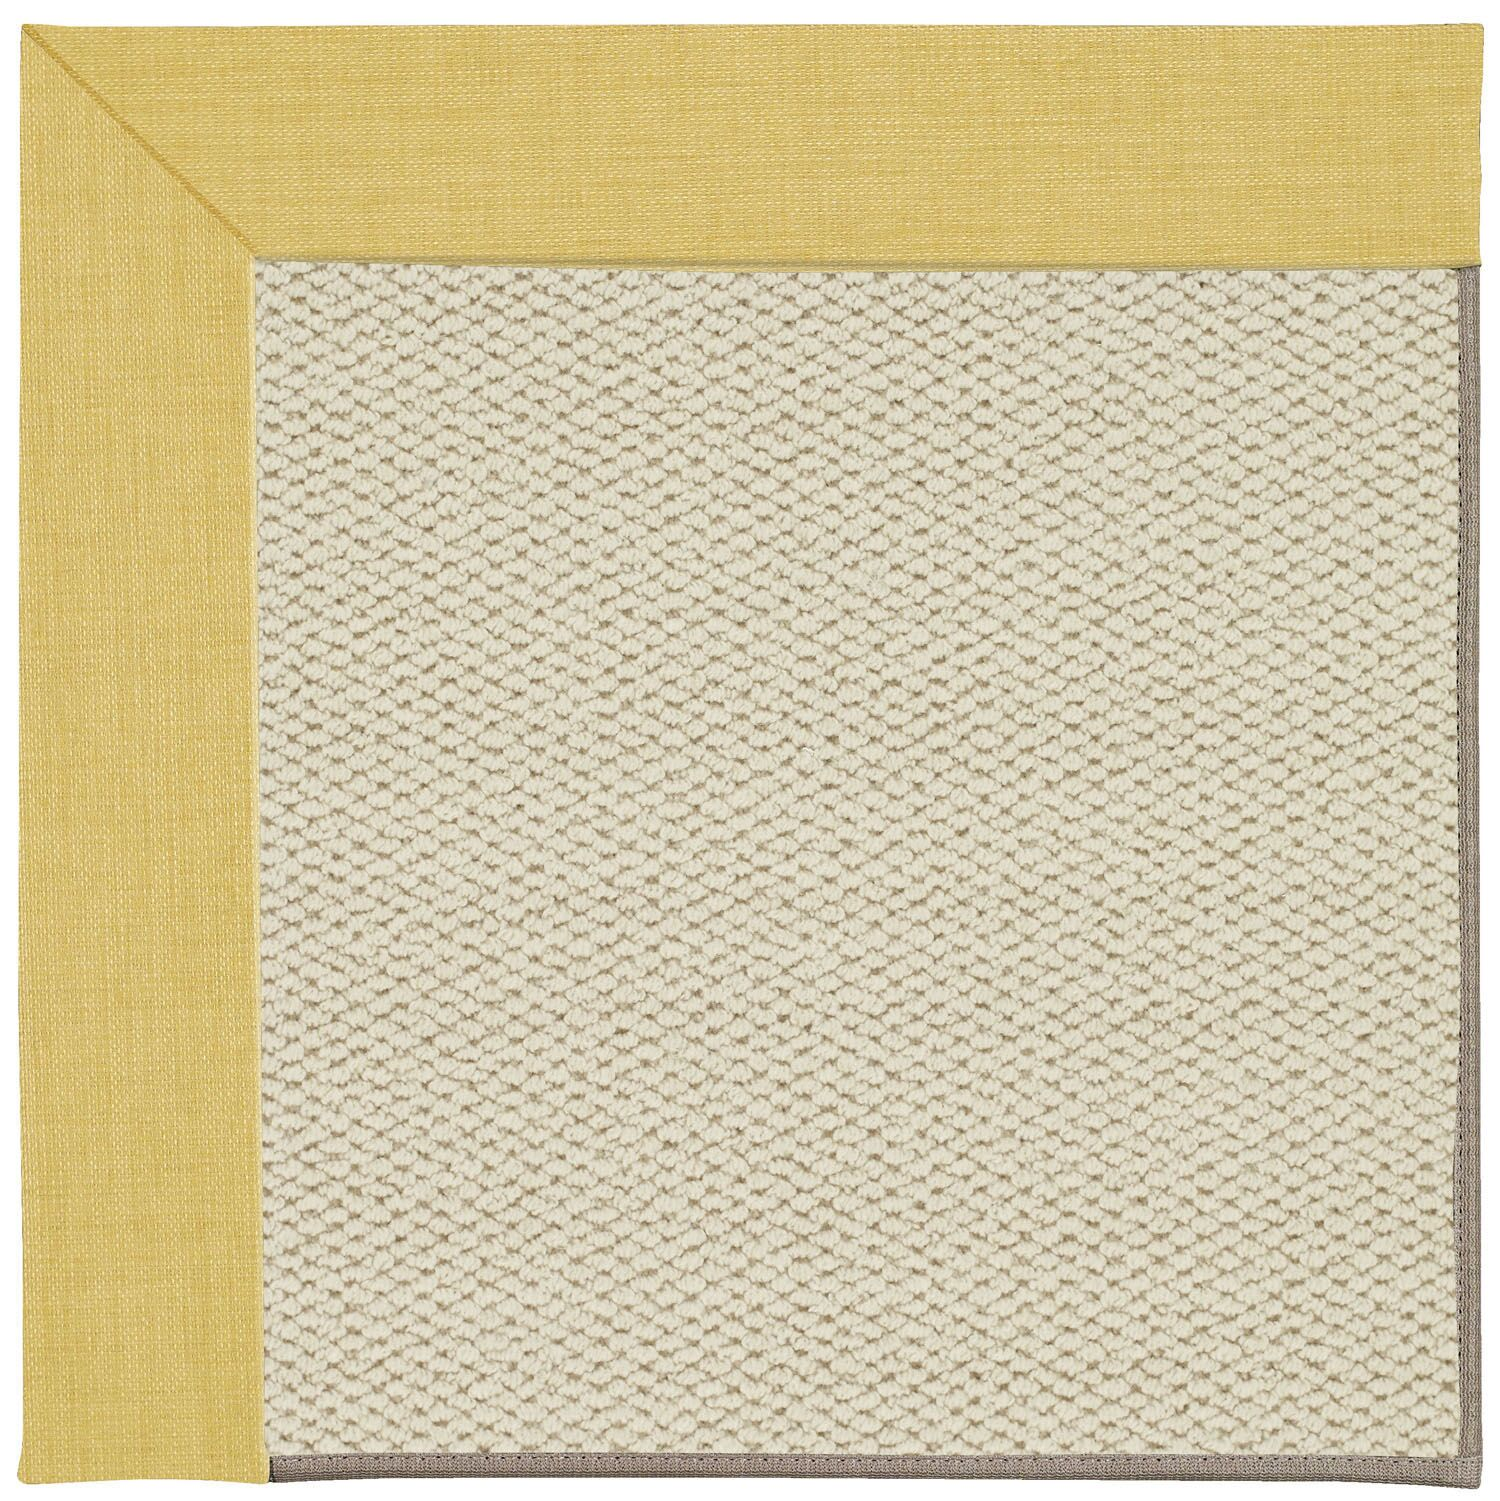 Barrett Linen Machine Tufted Blond Area Rug Rug Size: Rectangle 7' x 9'